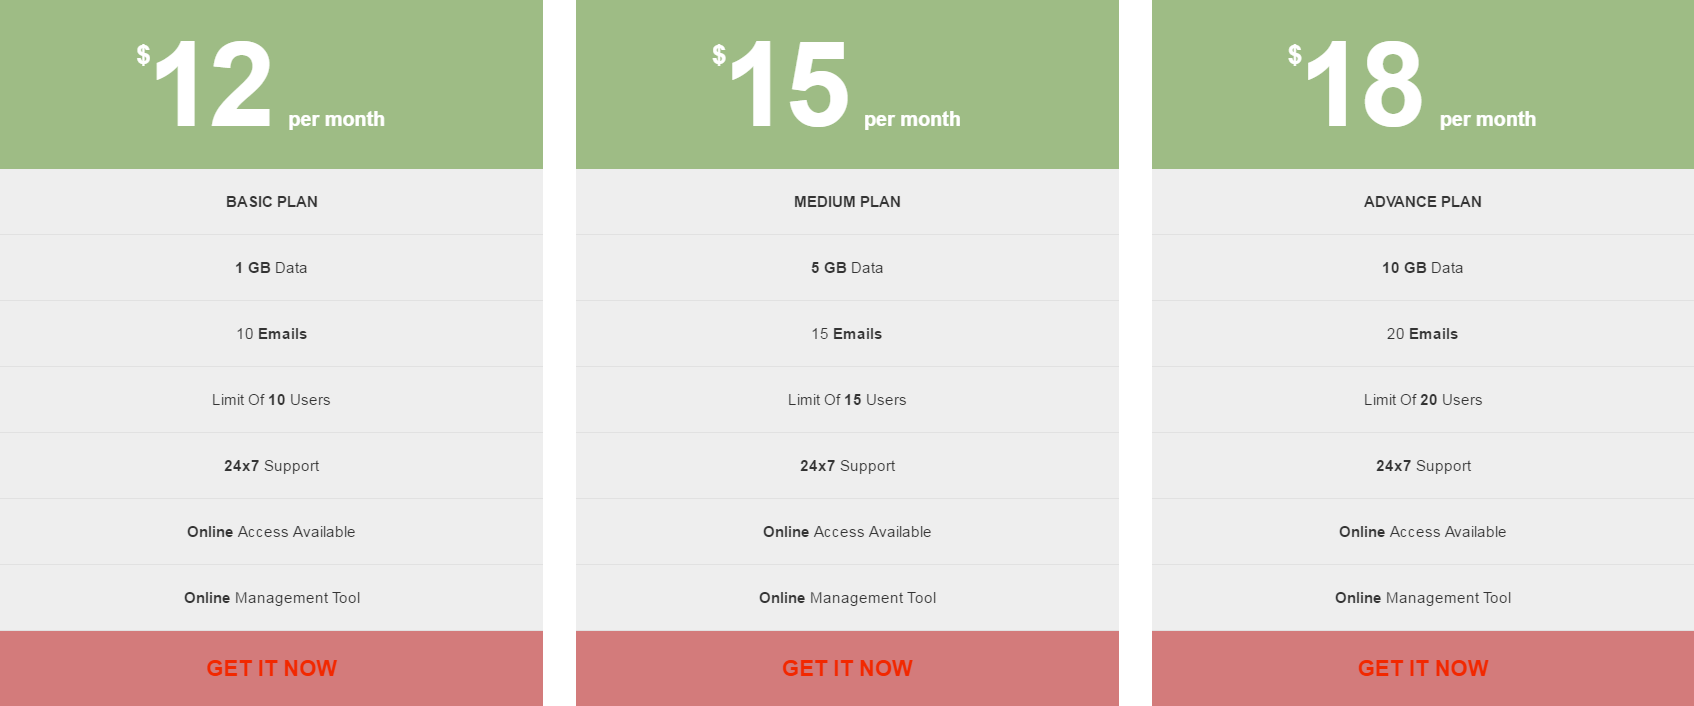 Bootstrap pricing table widget webnots for Bootstrap table design